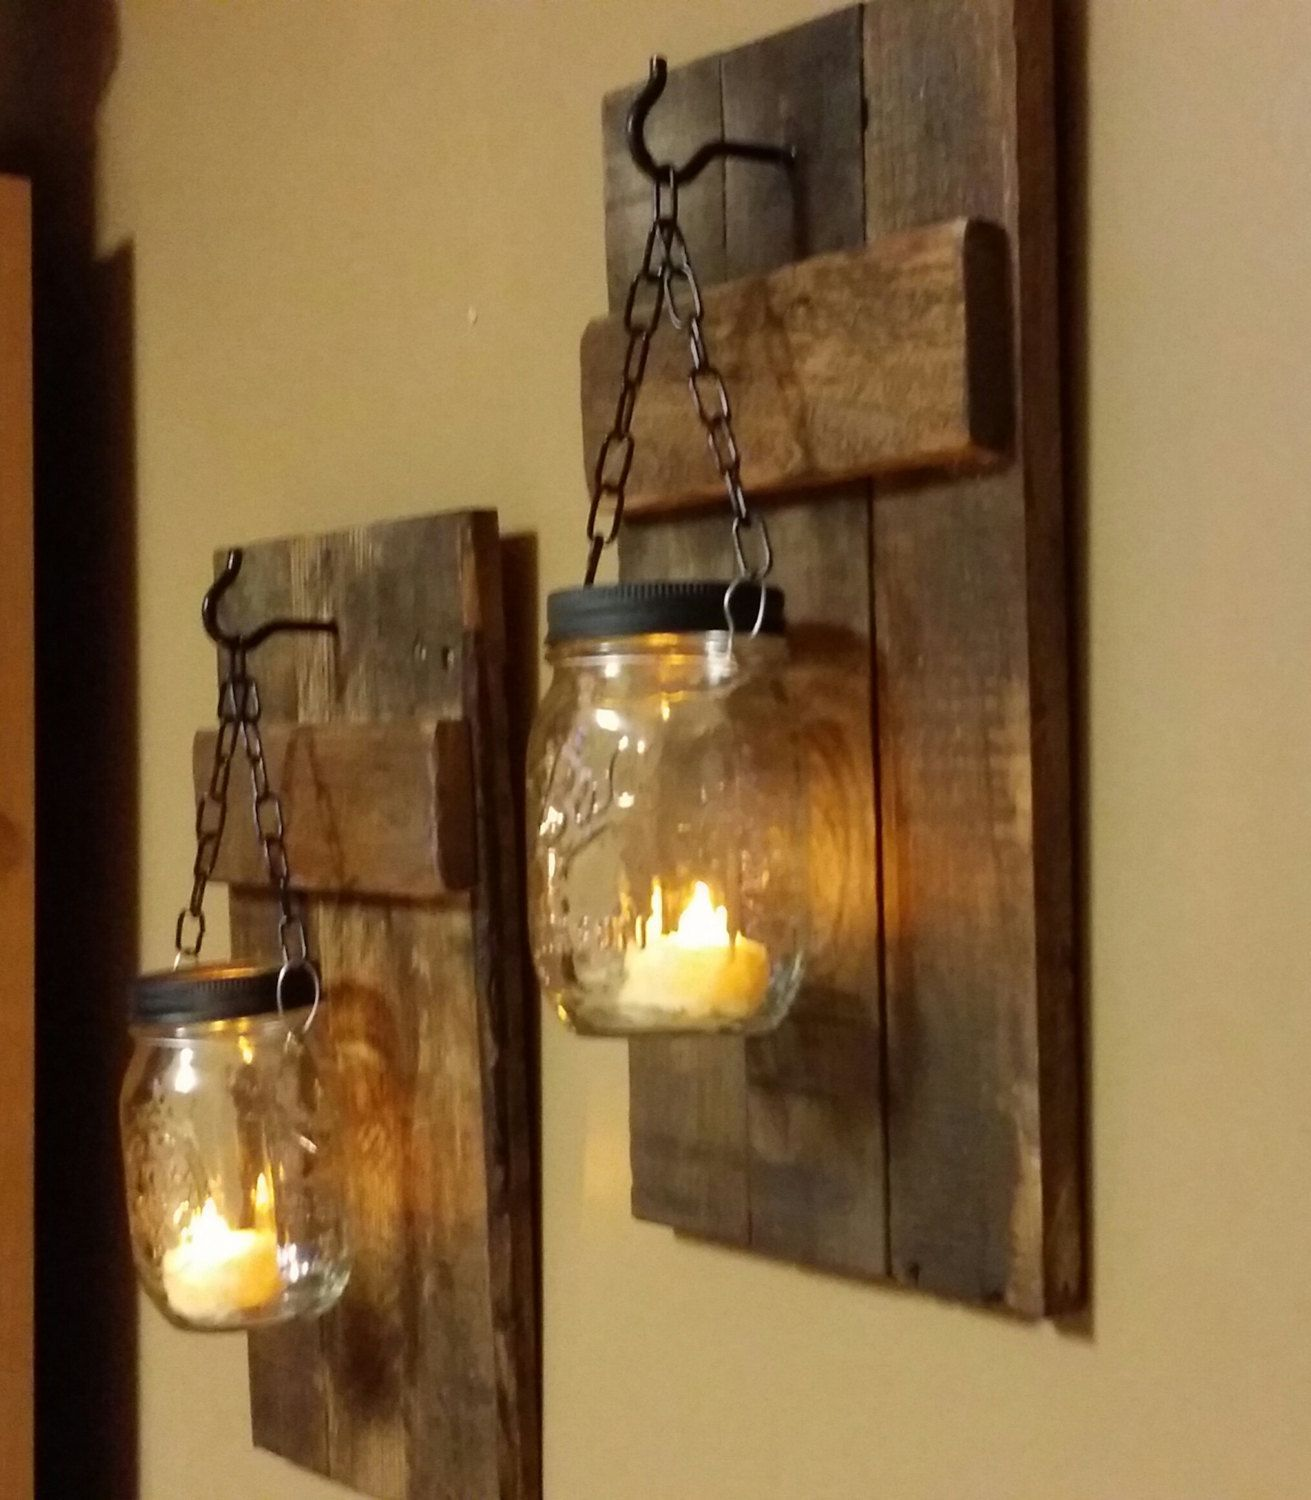 Photo of Rustic Home Decor, Rustic Candle, sconce, Home and Living, Mason Jar decor, Farmhouse Decor, Wood Decor, Candleholder priced 1 each